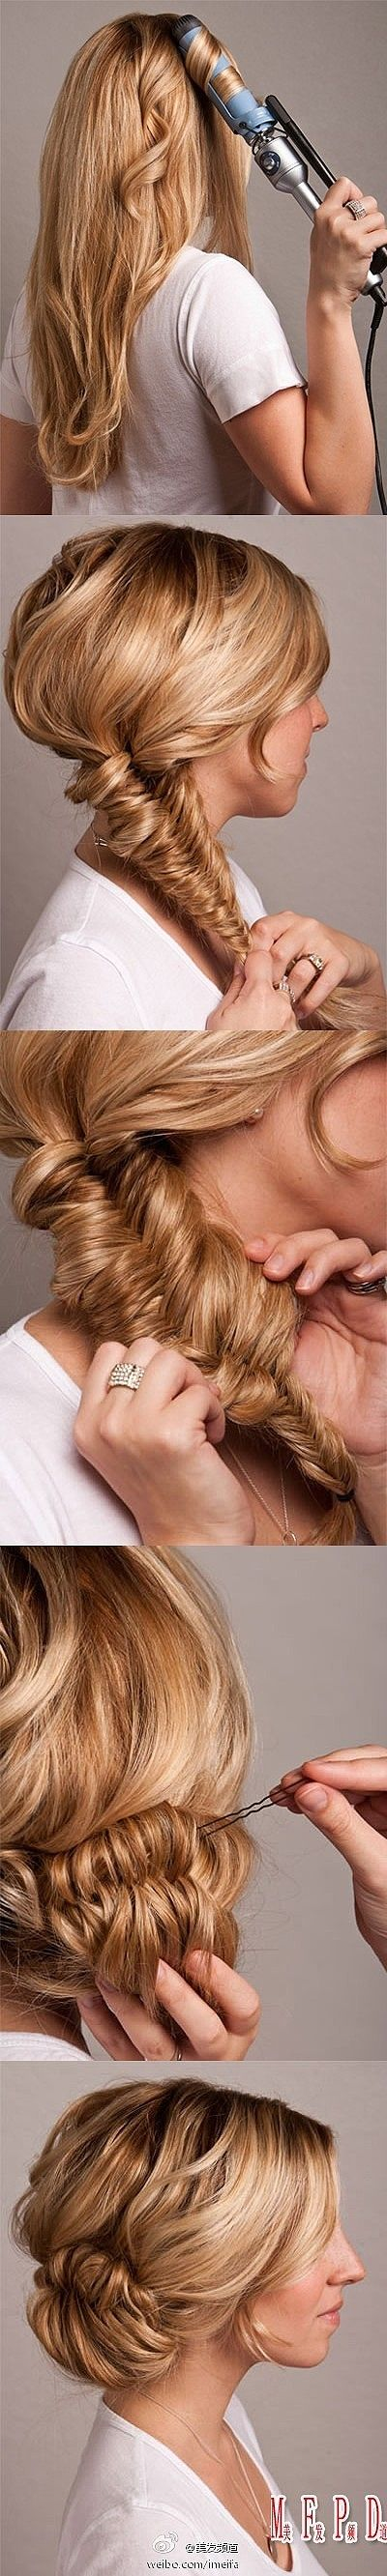 Fishtail bun updo. We love this DIY hairdo. Take a trip to your local Duane Reade for hair tools and products.